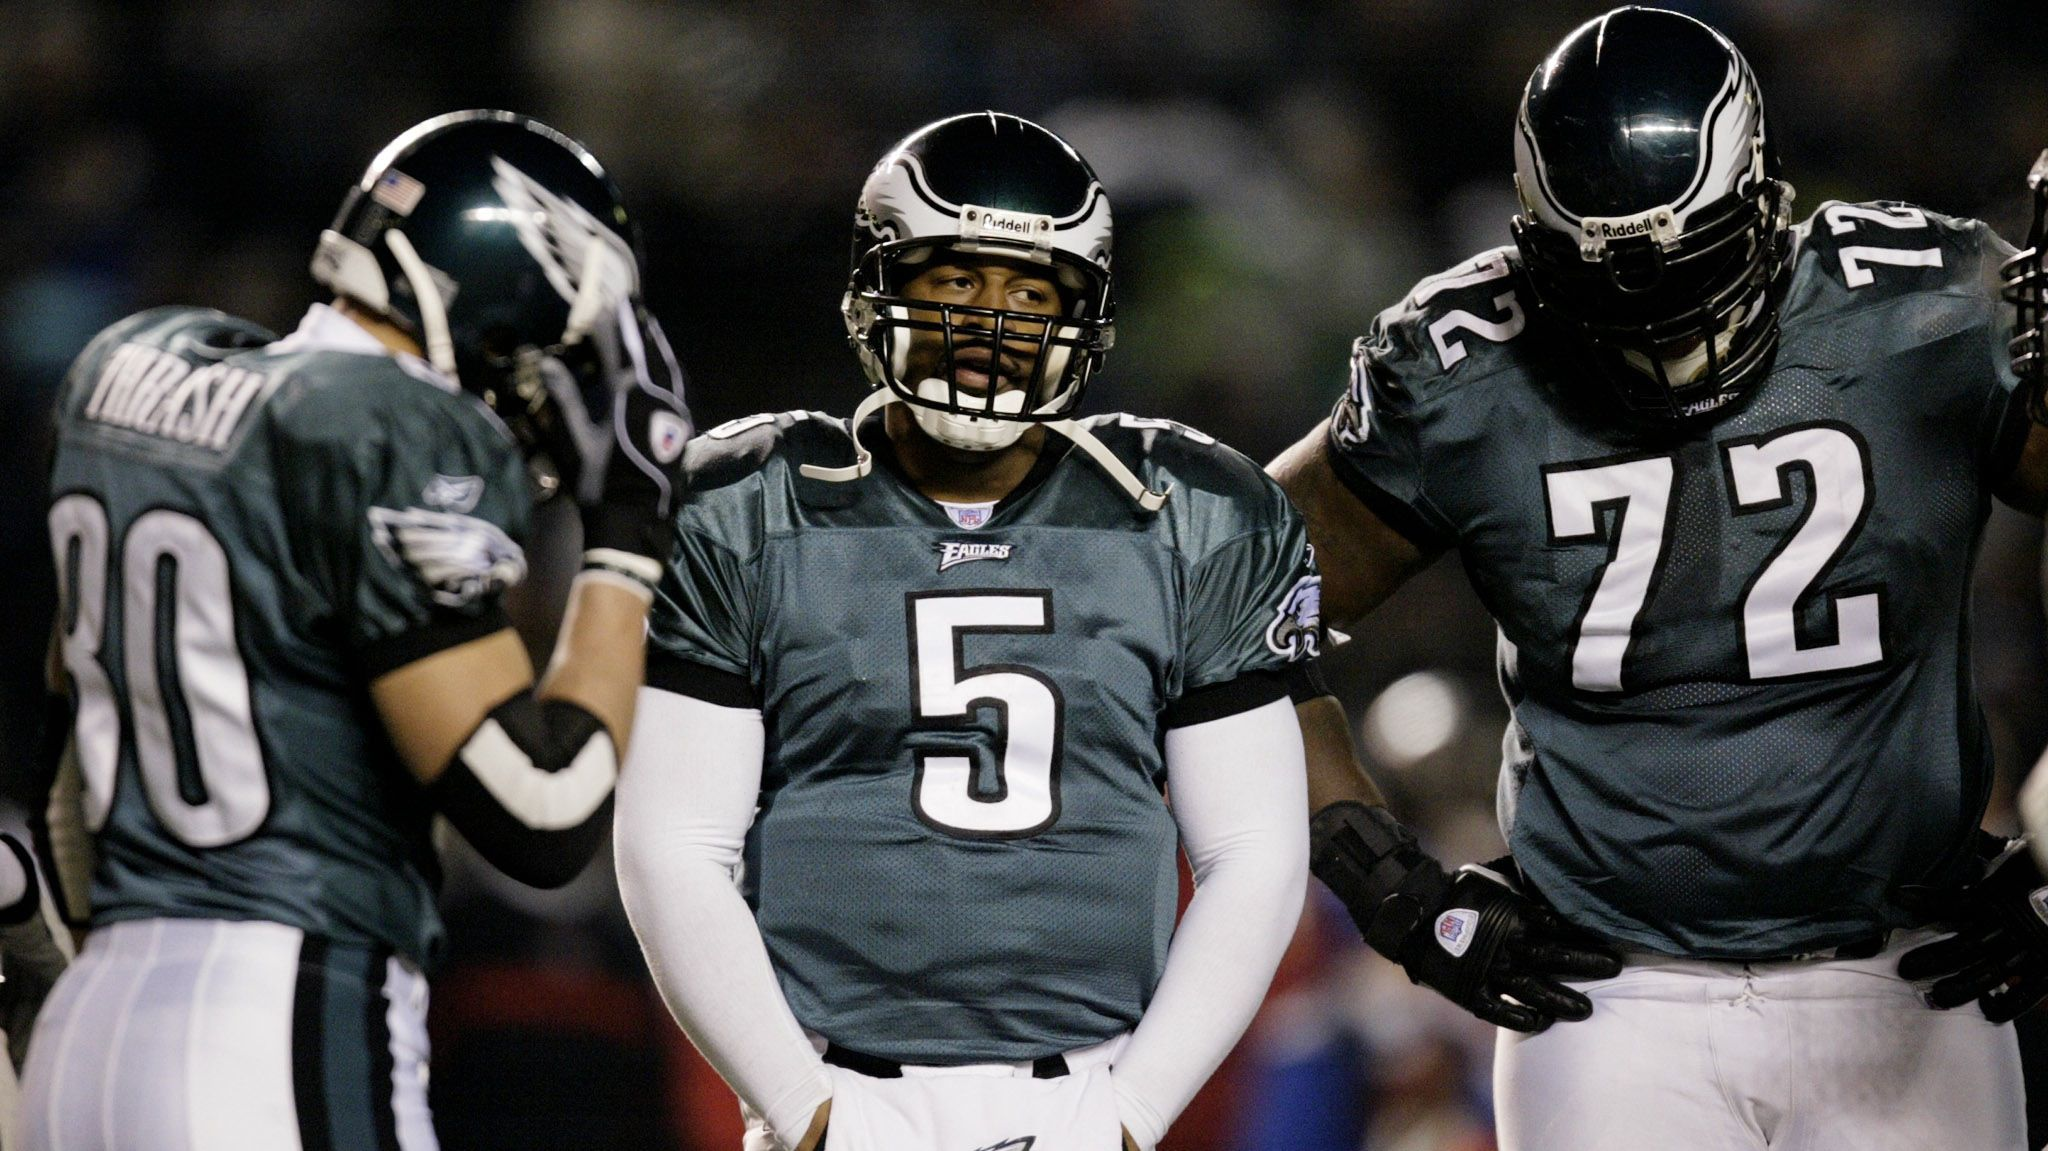 Philadelphia Eagles quarterback Donovan McNabb's (5) expression and body language illustrate what kind of day he is having against the Tampa Bay Buccaneers during their NFC Championship game in Philadelphia, January 19, 2003. Surrounding McNabb are teammates James Thrash (80) and Tra Thomas (72). REUTERS/Mike Segar  GAC - RTR11JVO